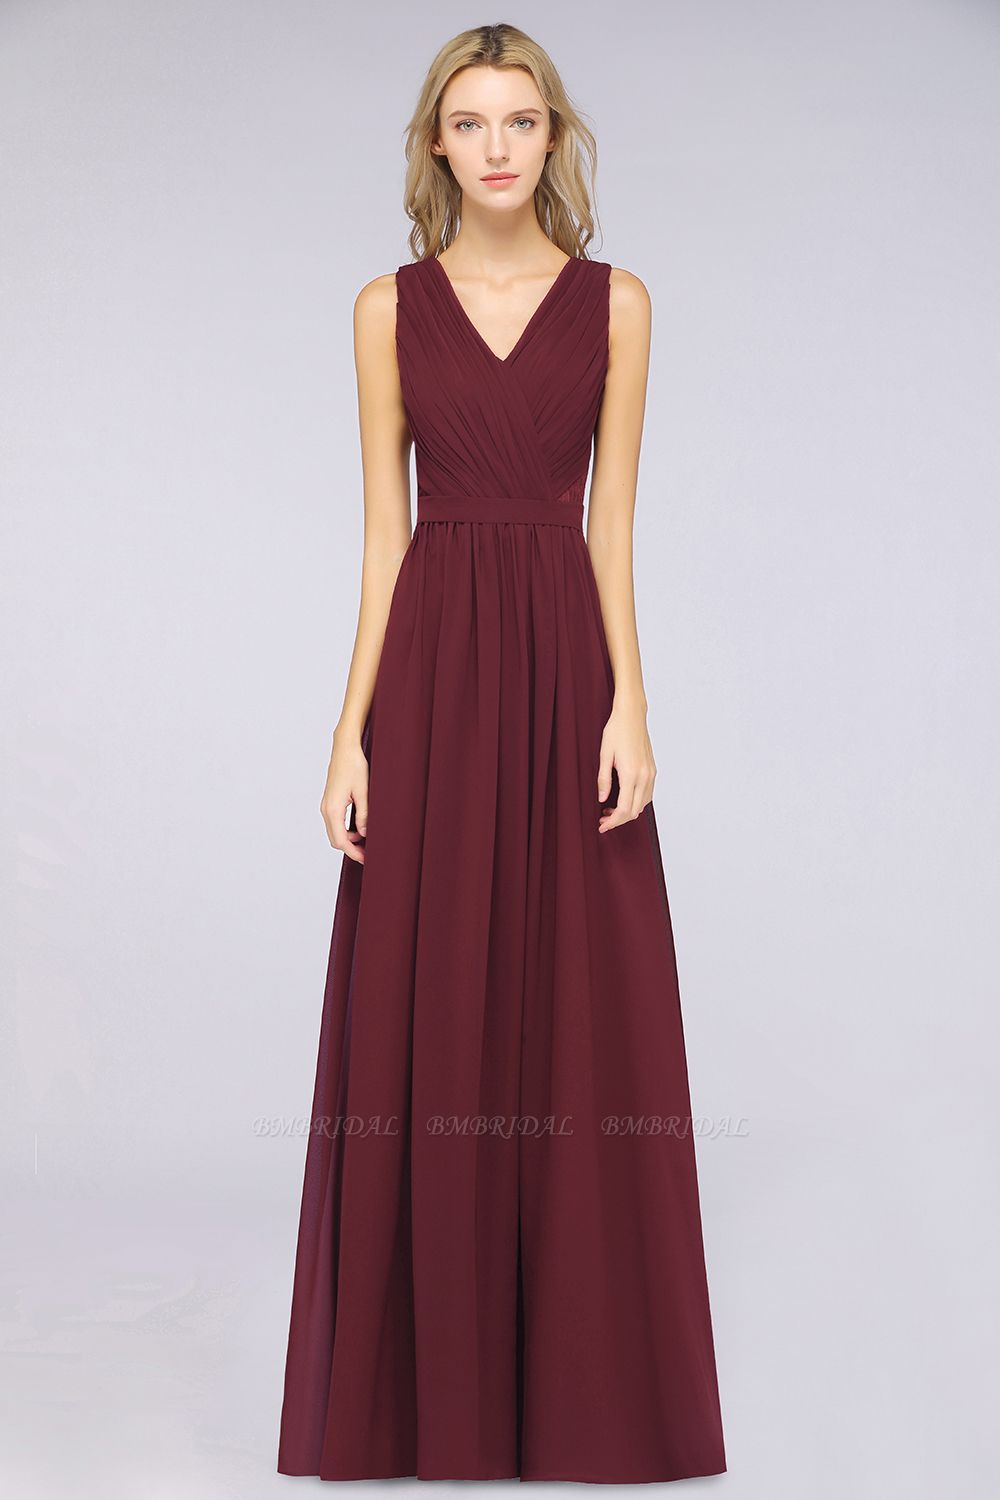 BMbridal Affordable Burgundy V-Neck Ruffle Bridesmaid Dresses with Lace-Back